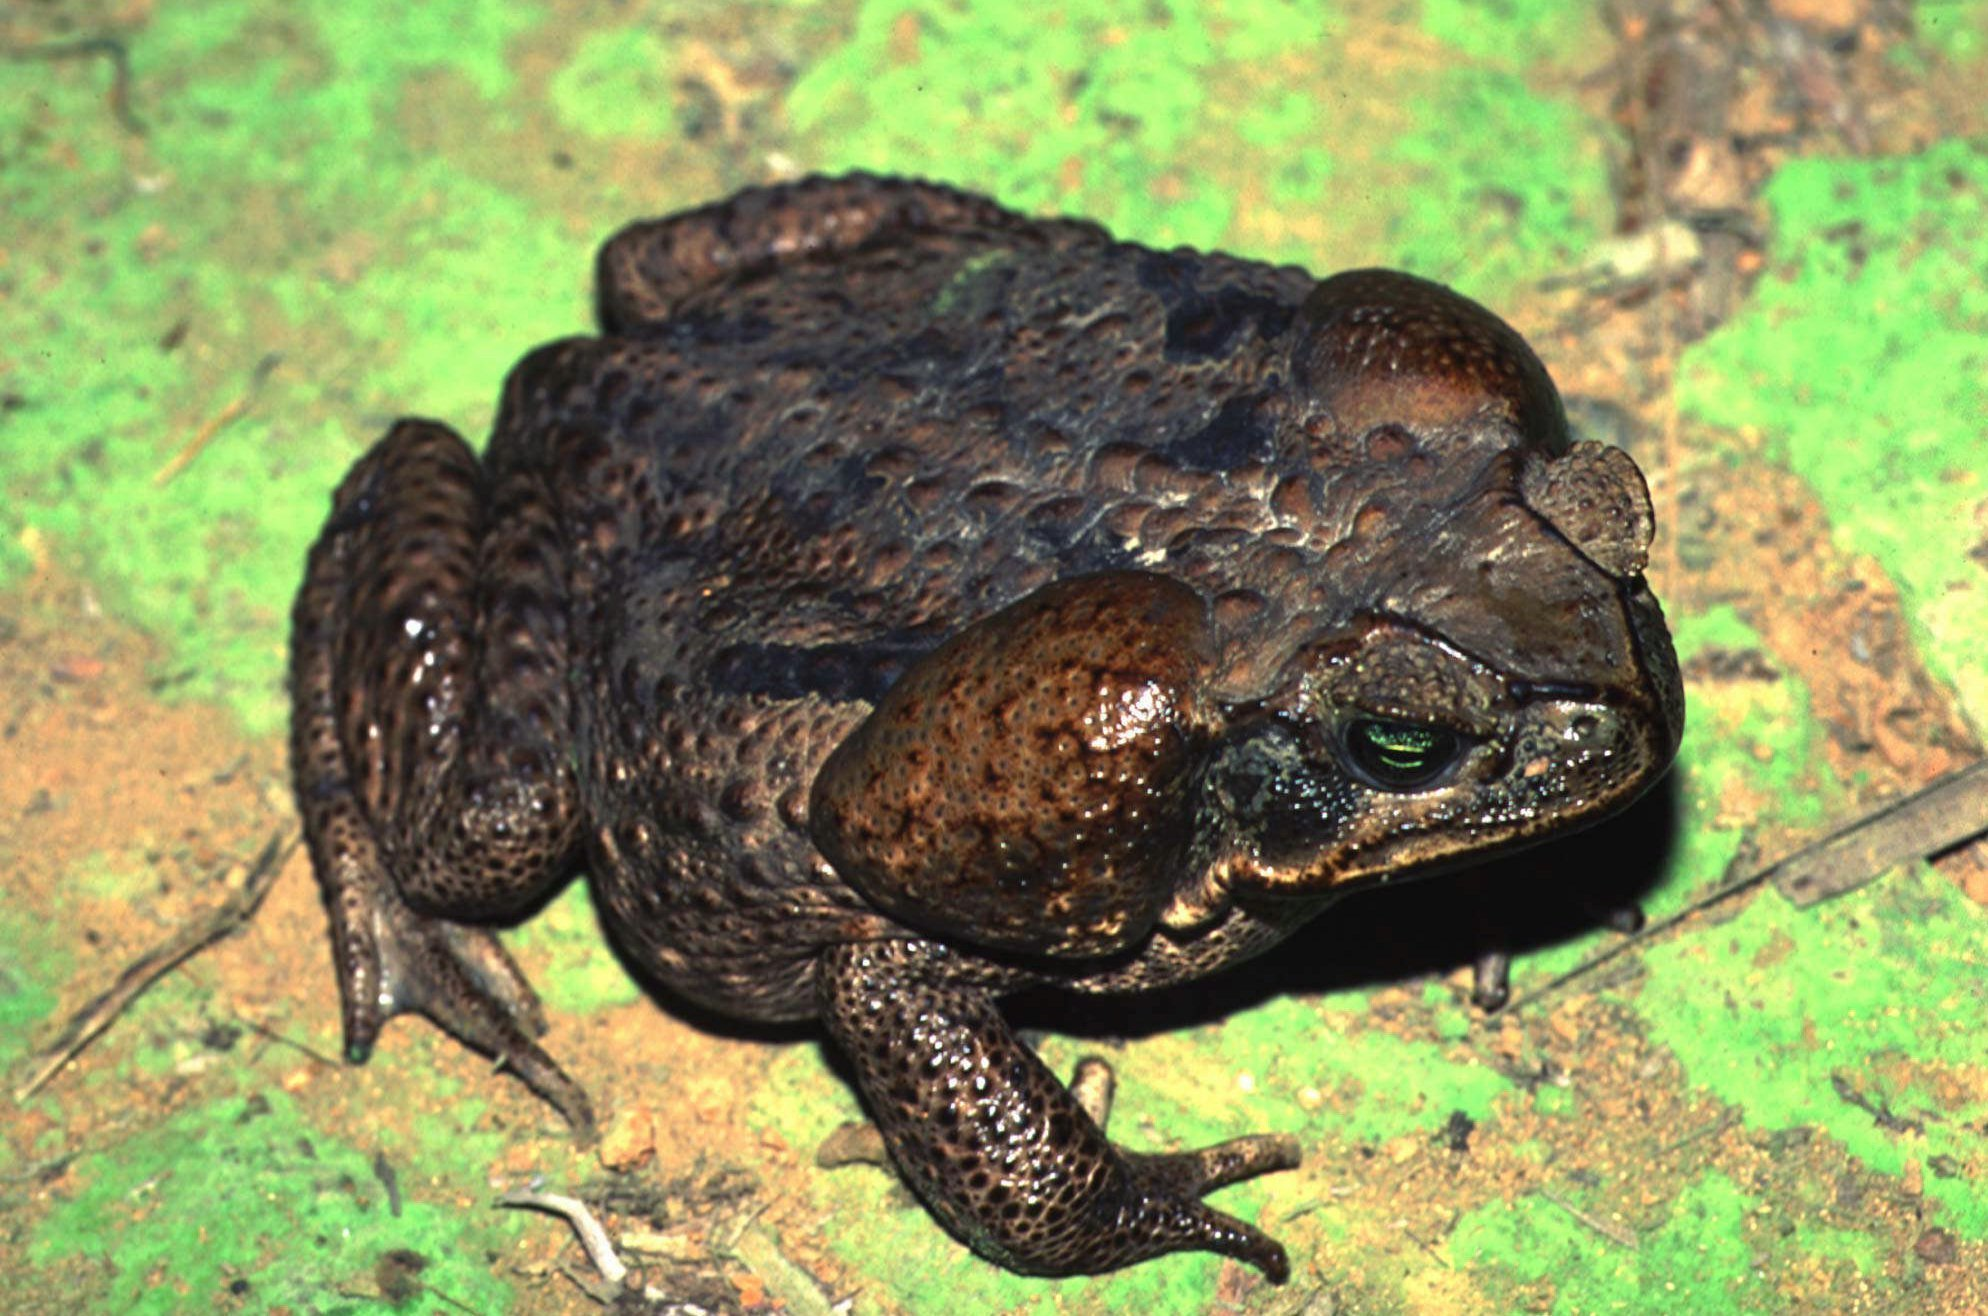 Poisonous bufo toads infesting South Florida neighborhood and they are spreading